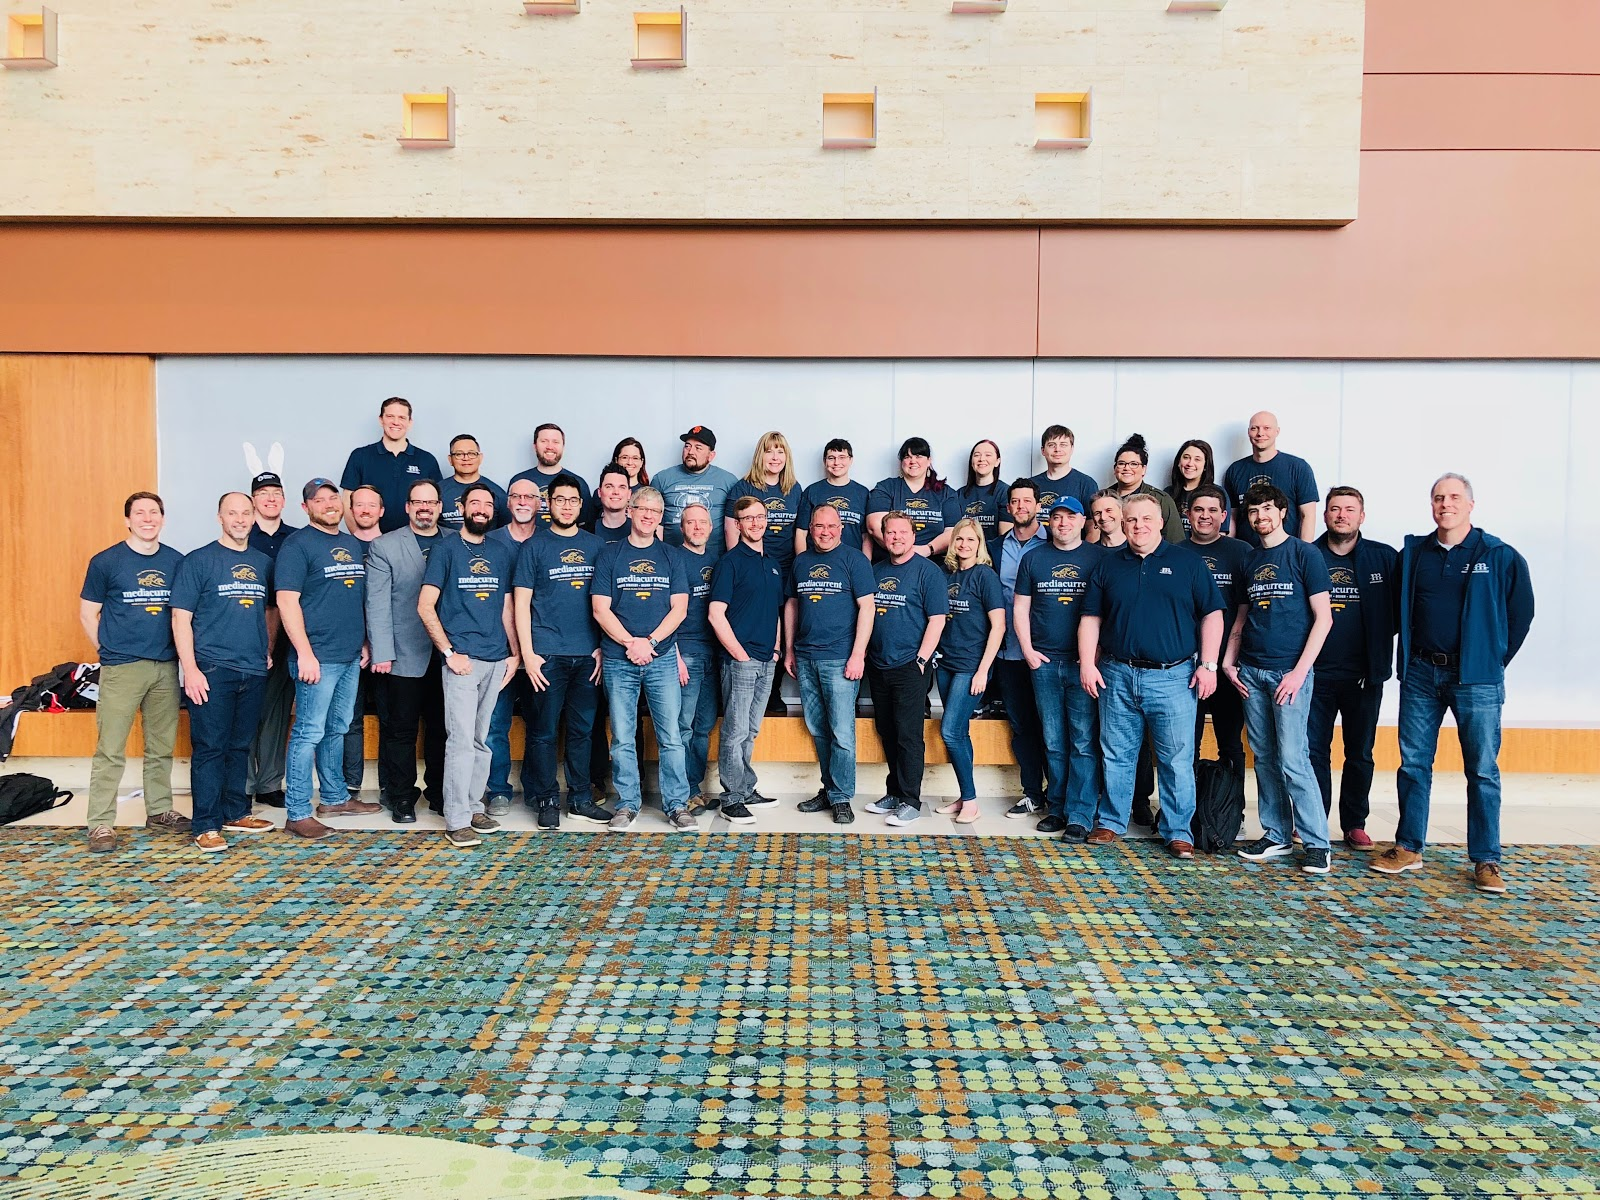 Mediacurrent Team Attendees at DrupalCon